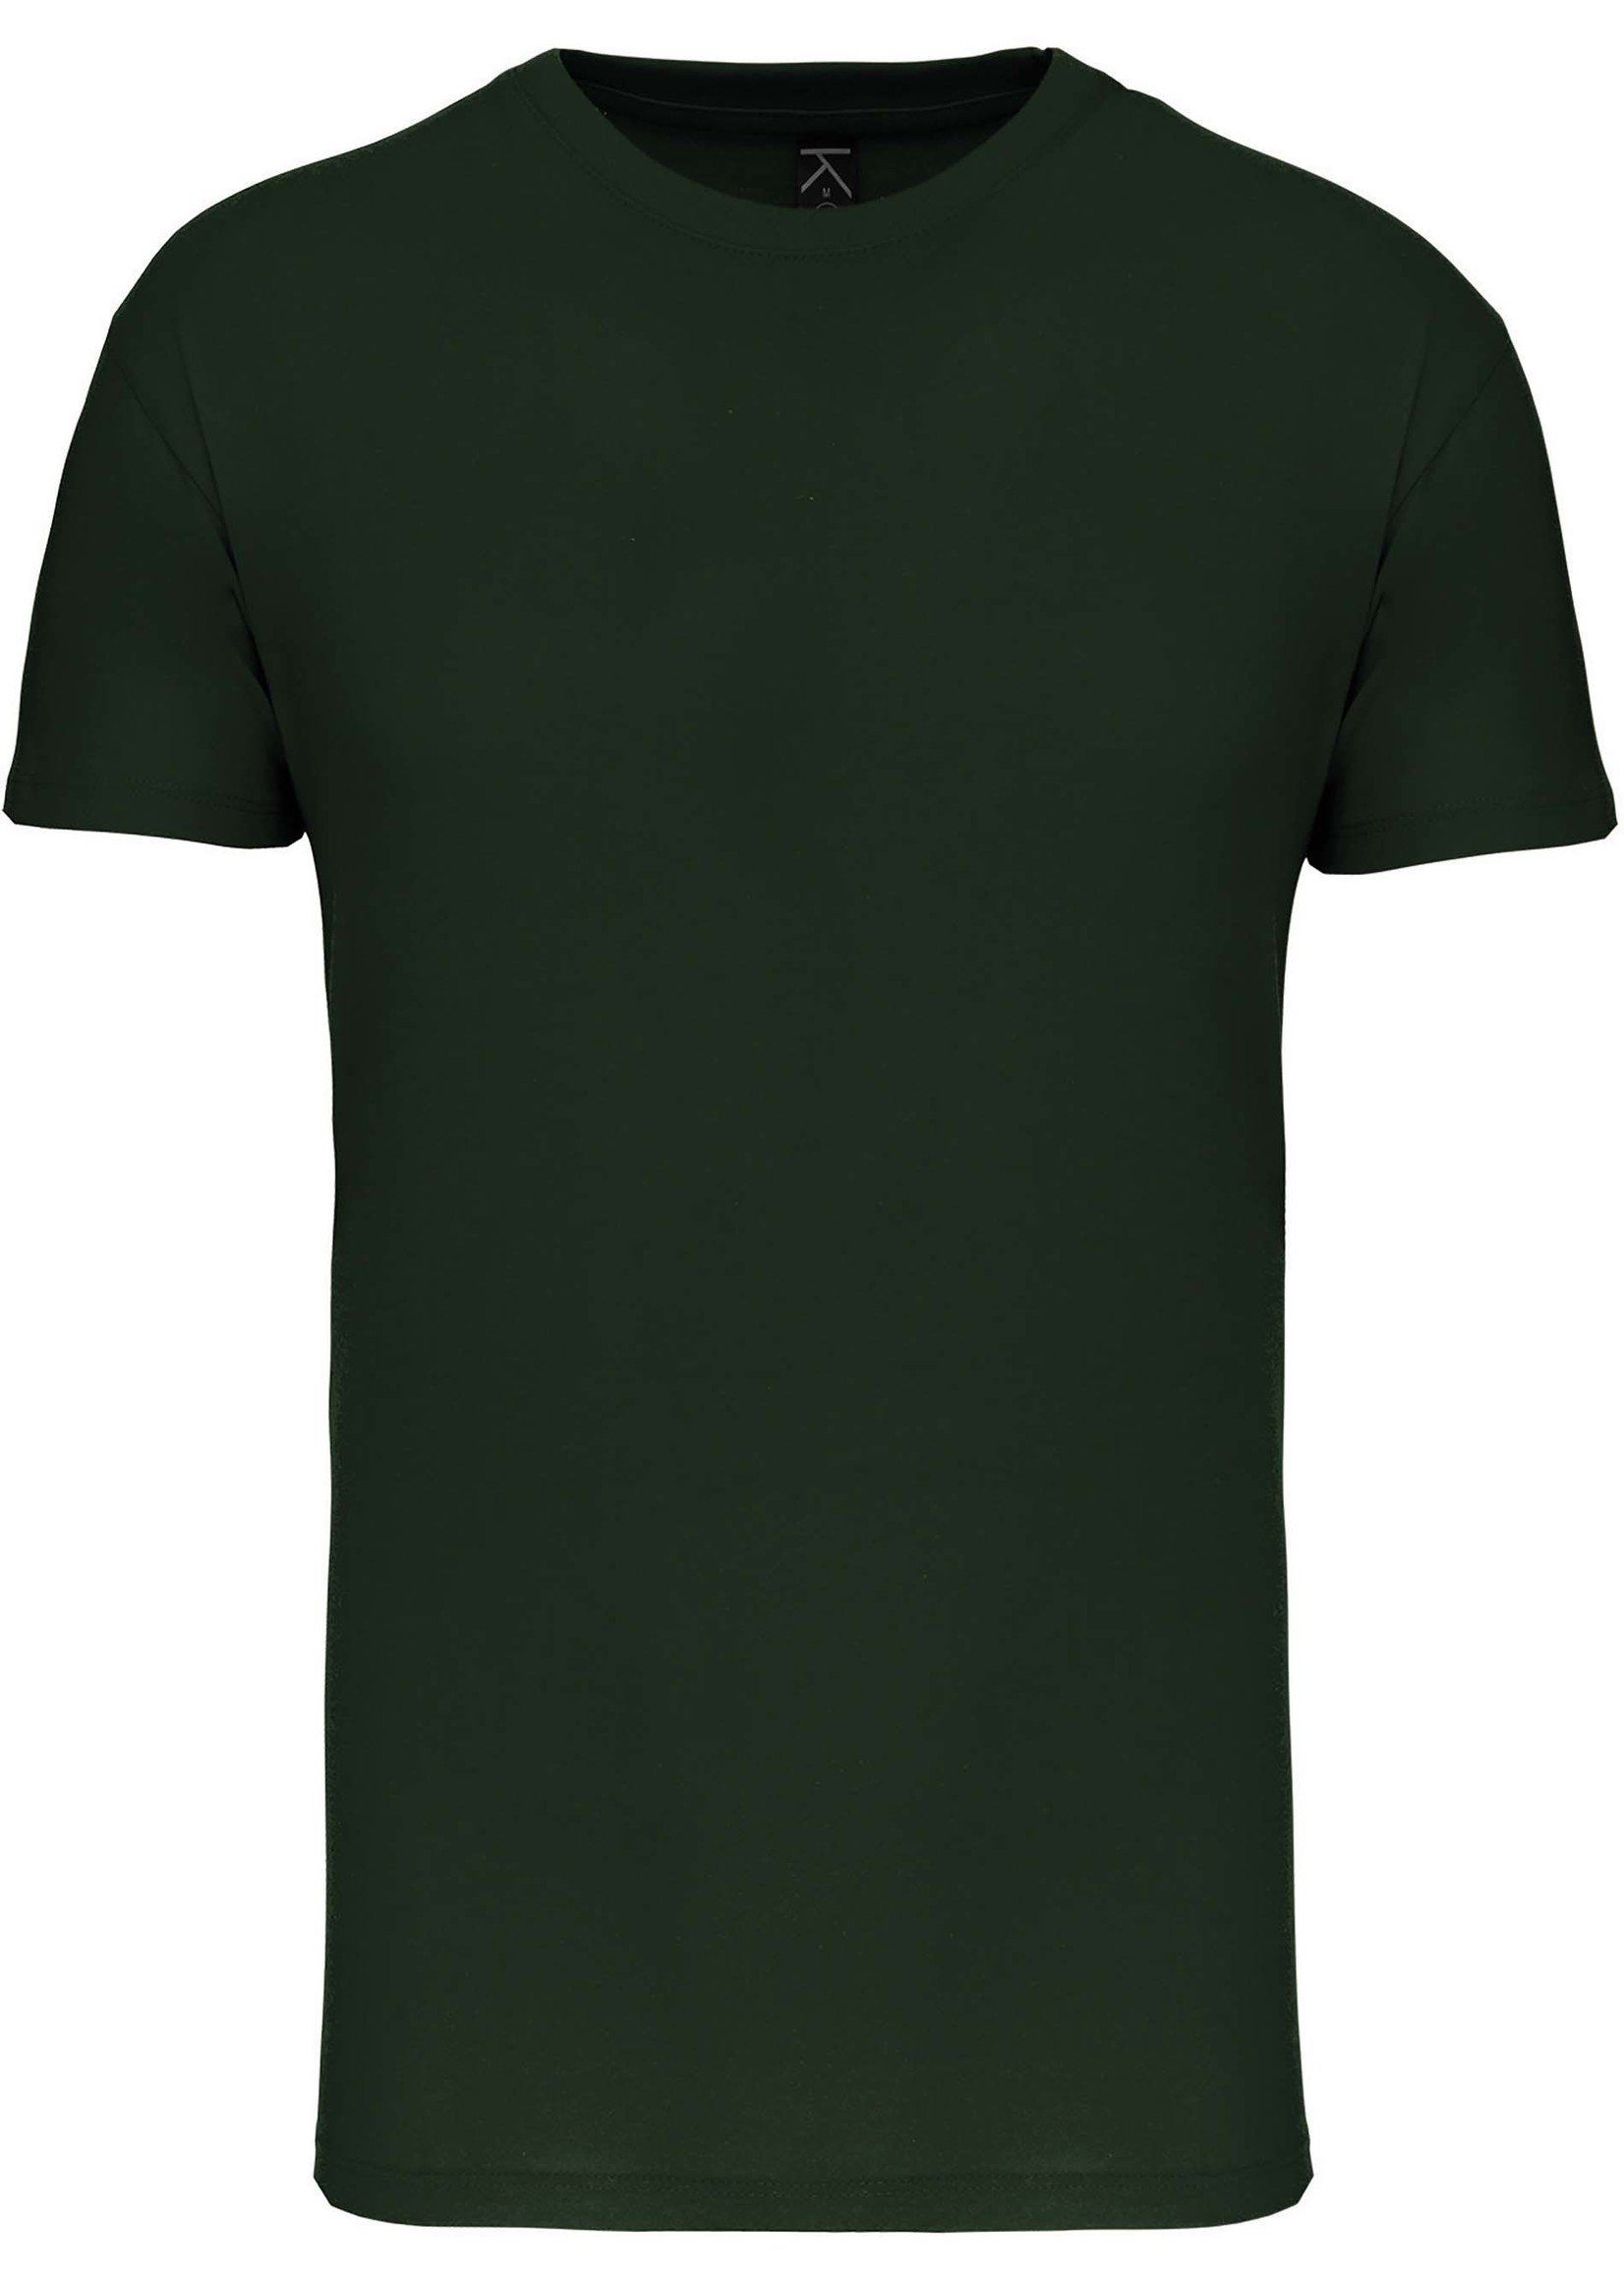 Eco-Friendly KIDS T-shirt - Forest Green